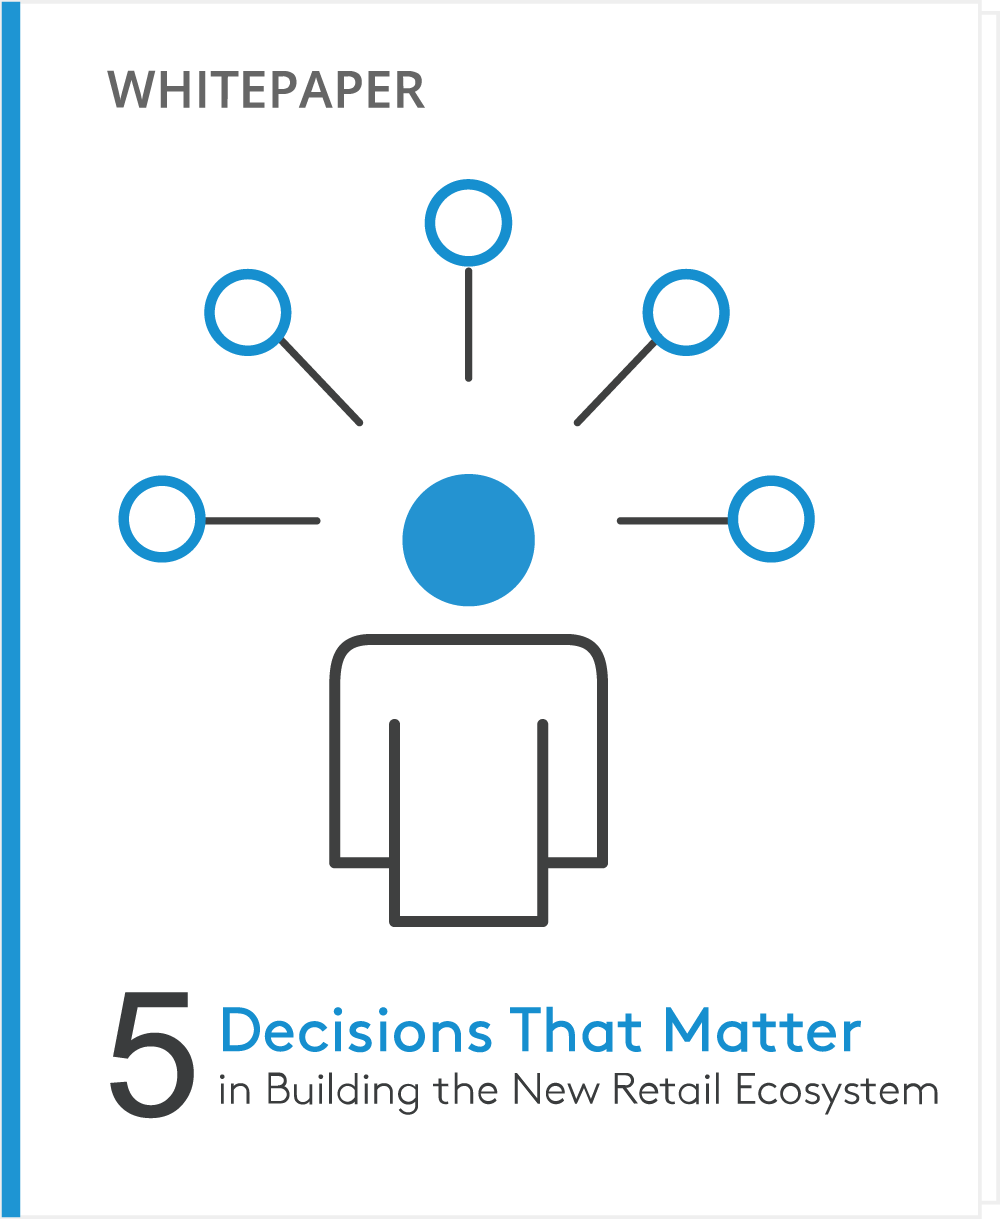 The Five Decisions That Matter in Building the New Retail Ecosystem